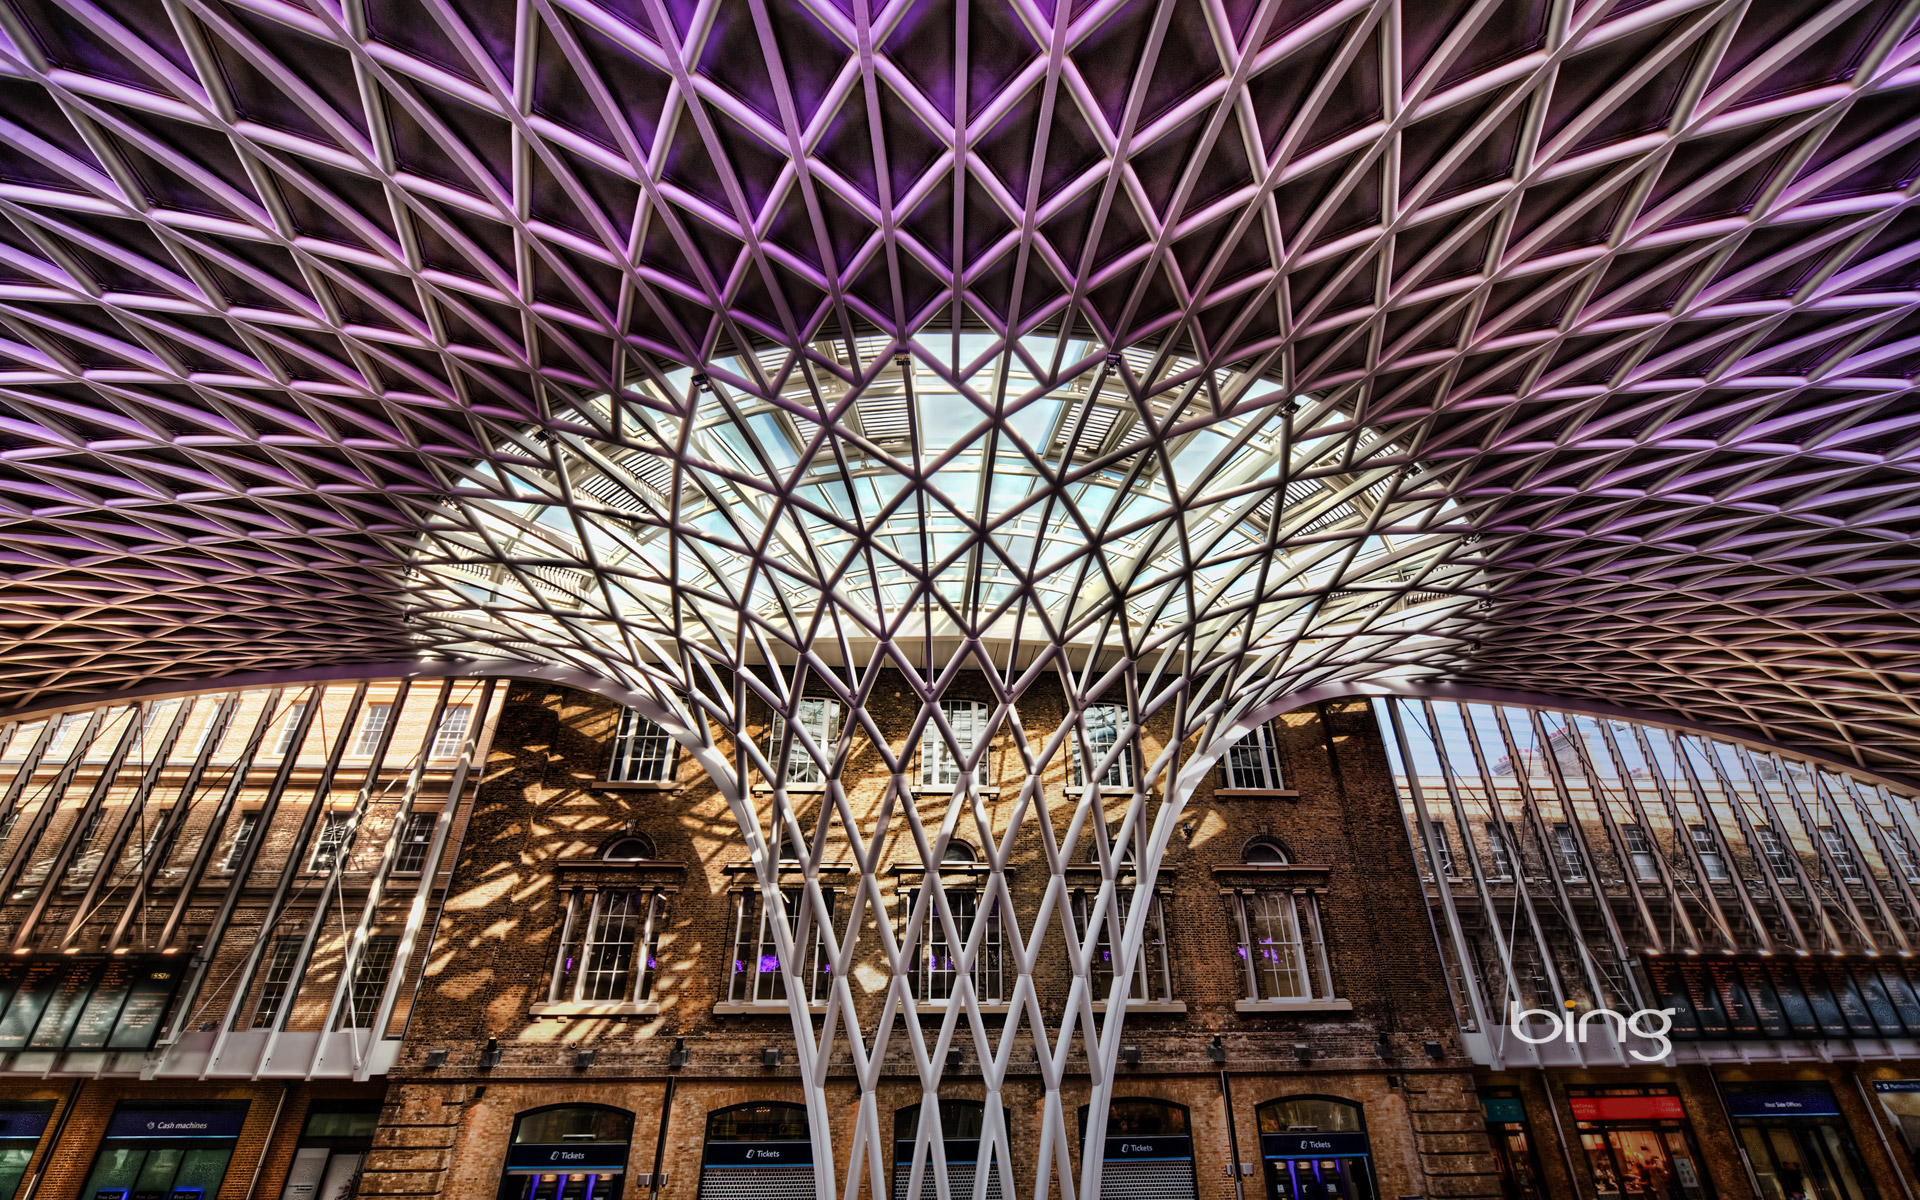 Western Concourse at King's Cross station, London, England